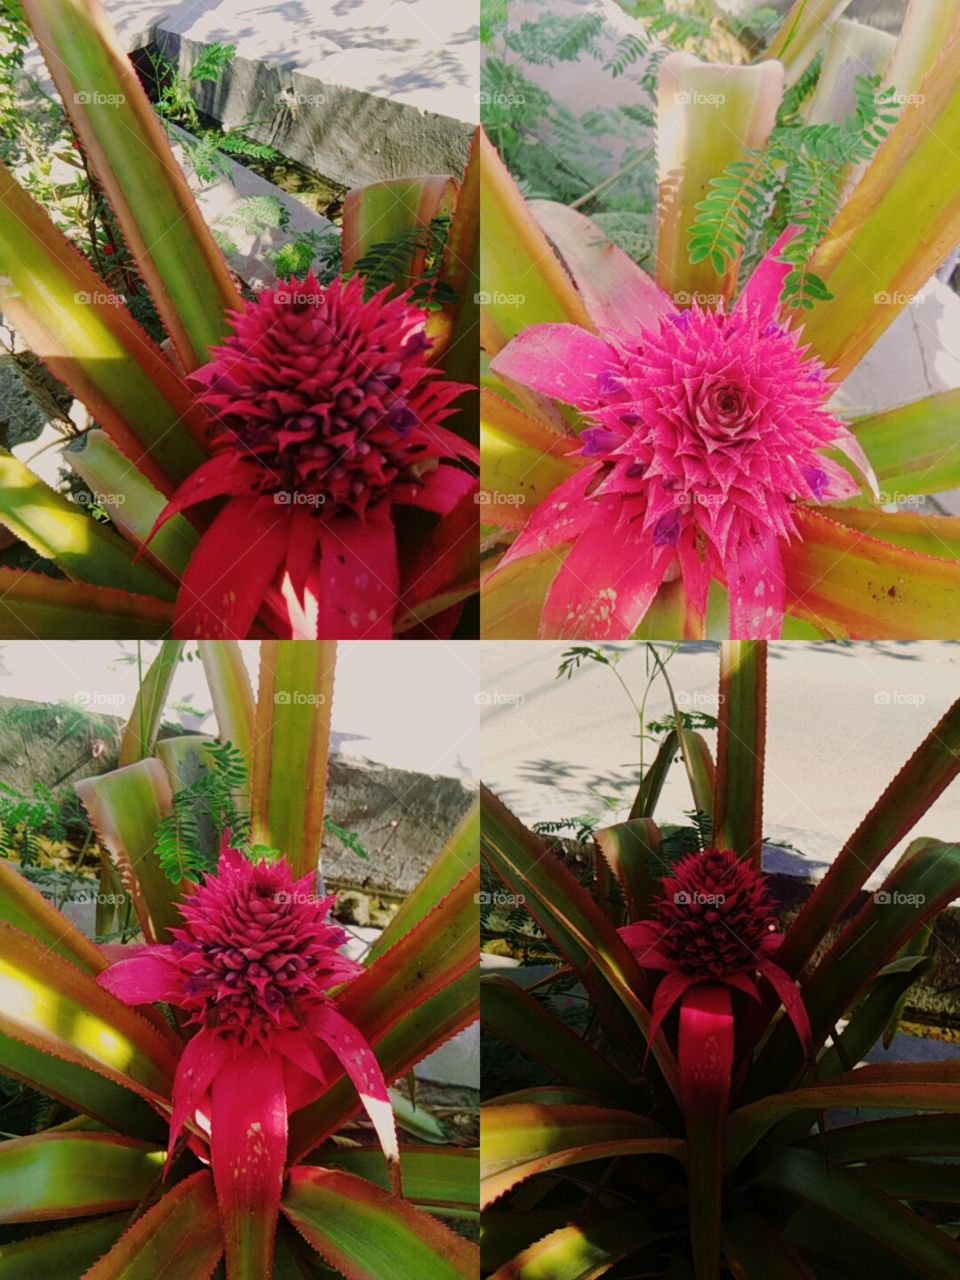 this is a pict of pinapple flower